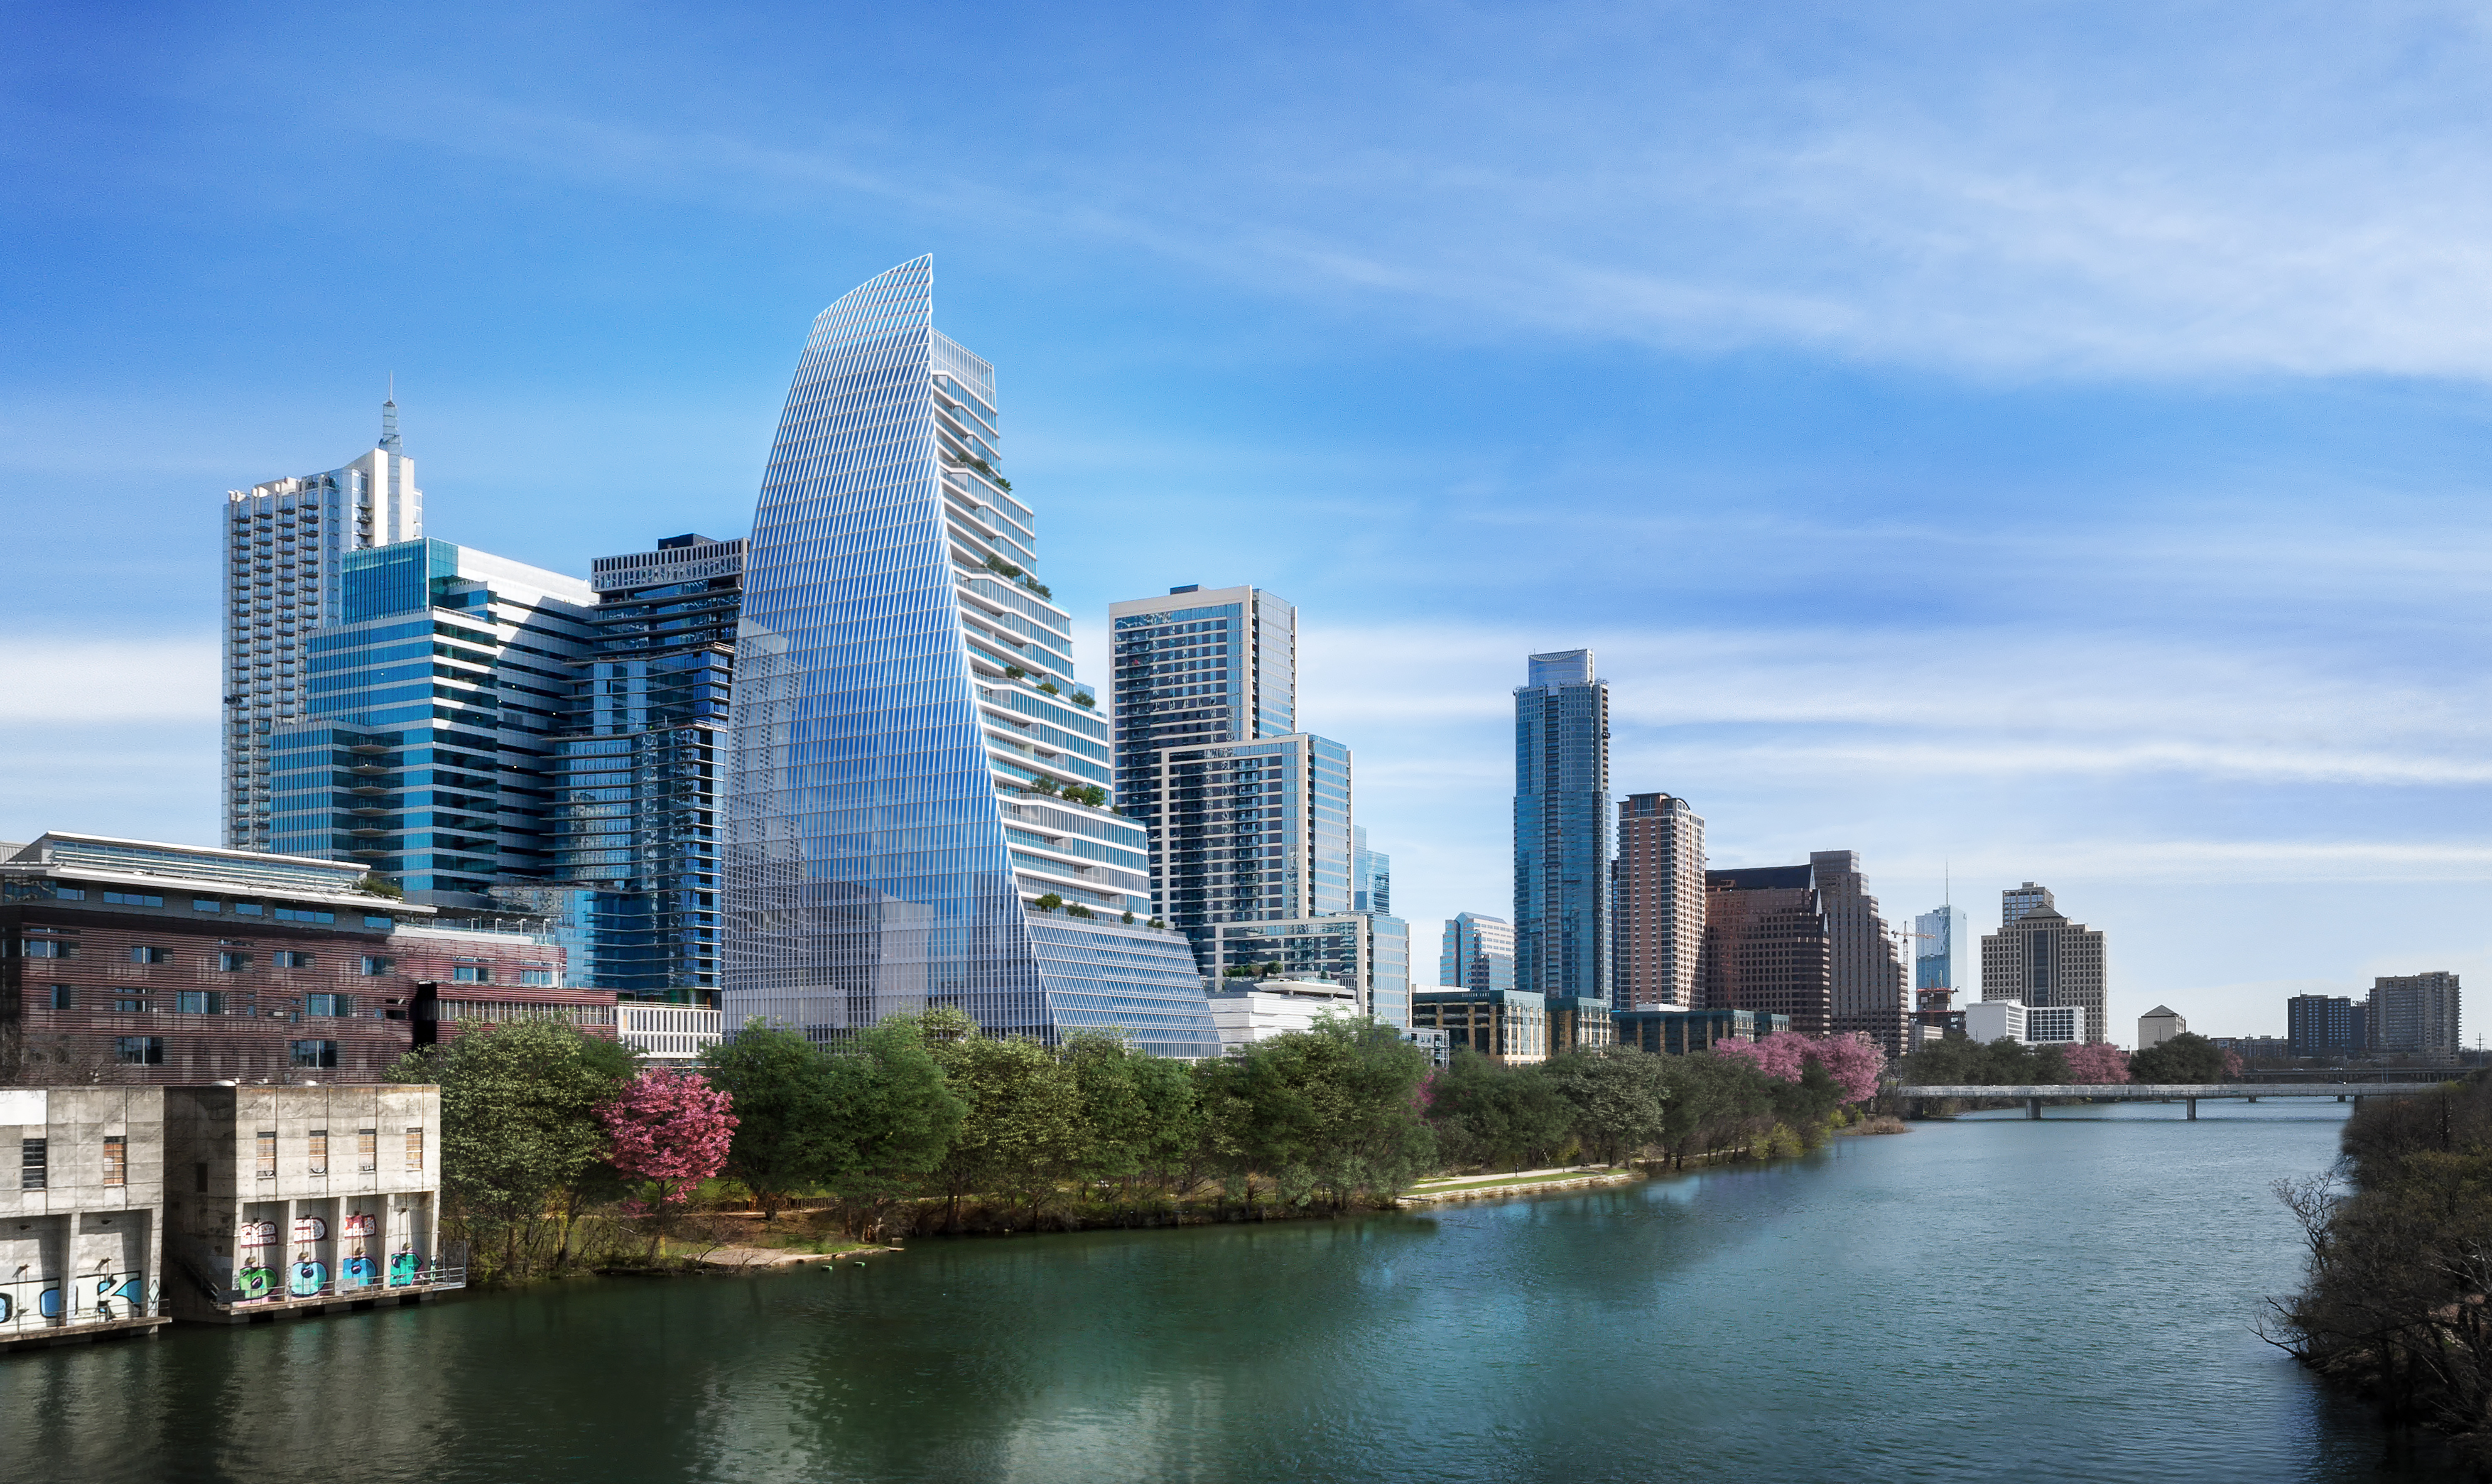 Rendering of downtown Austin from pov of south side of lake with sail-shaped tower in foreground on lakeside